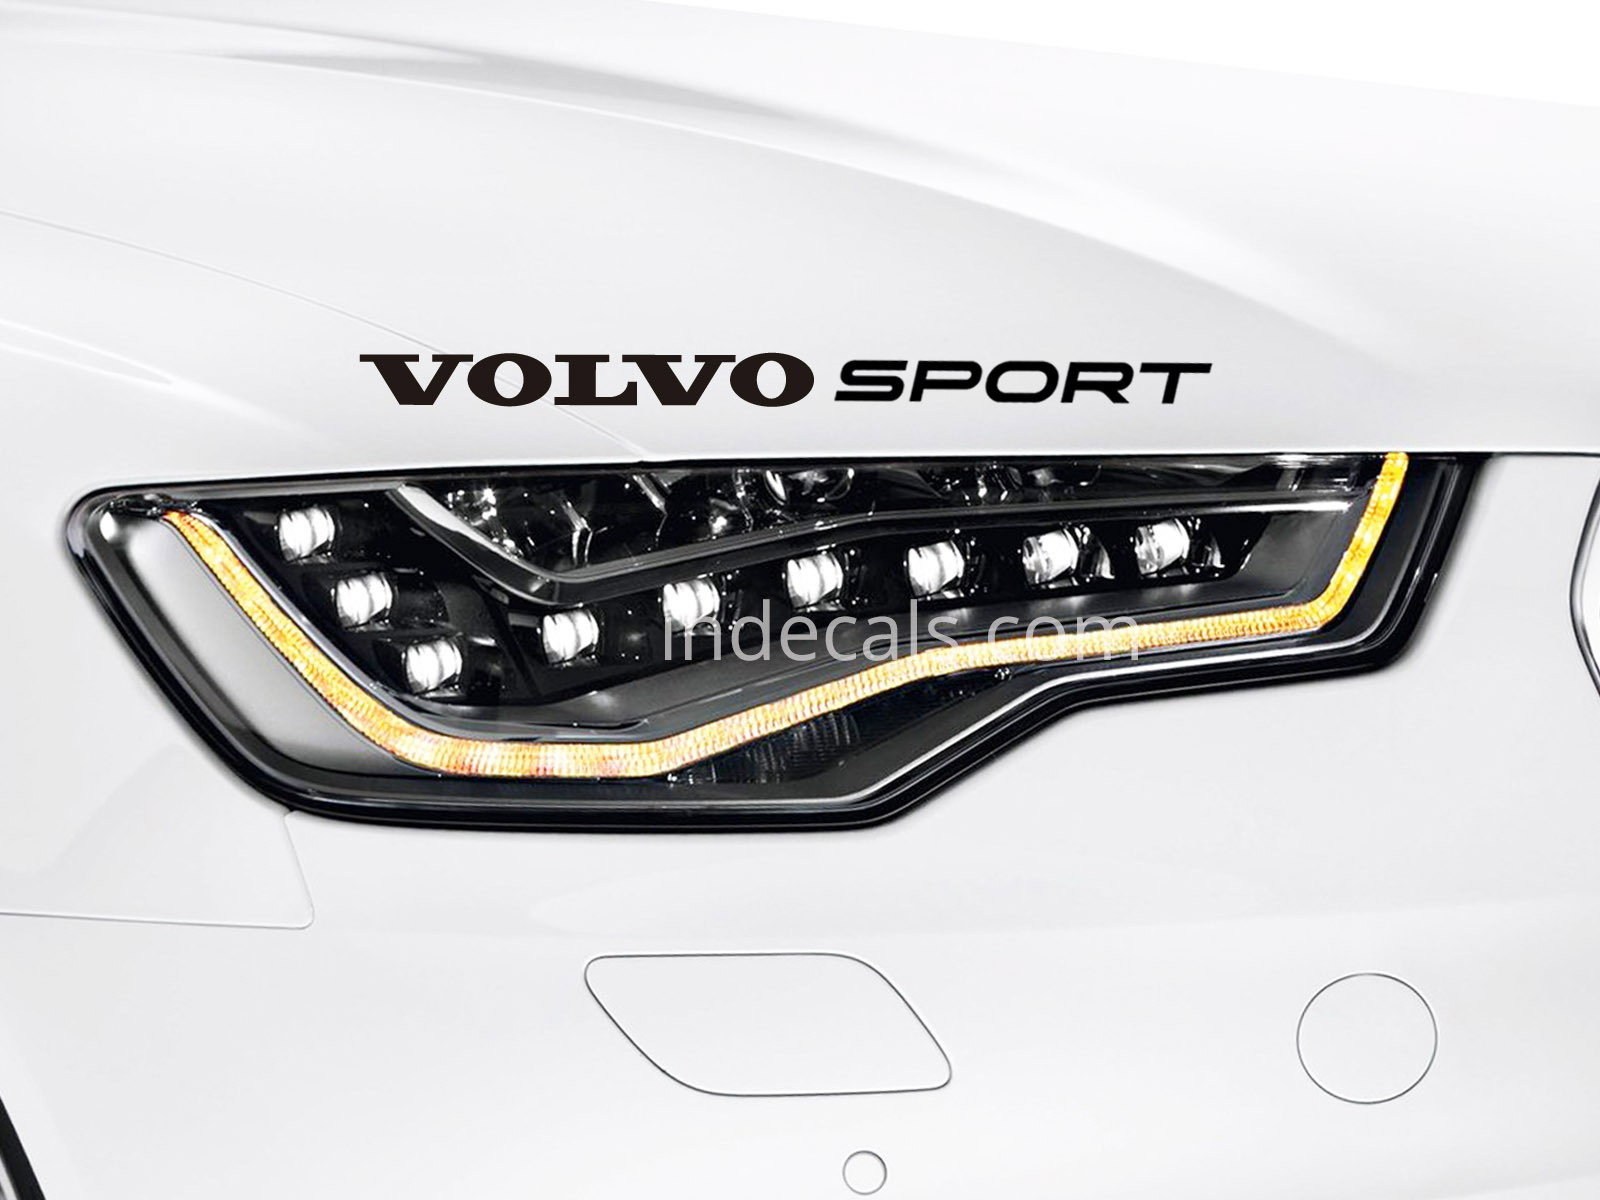 1 x Volvo Sport Sticker - Black